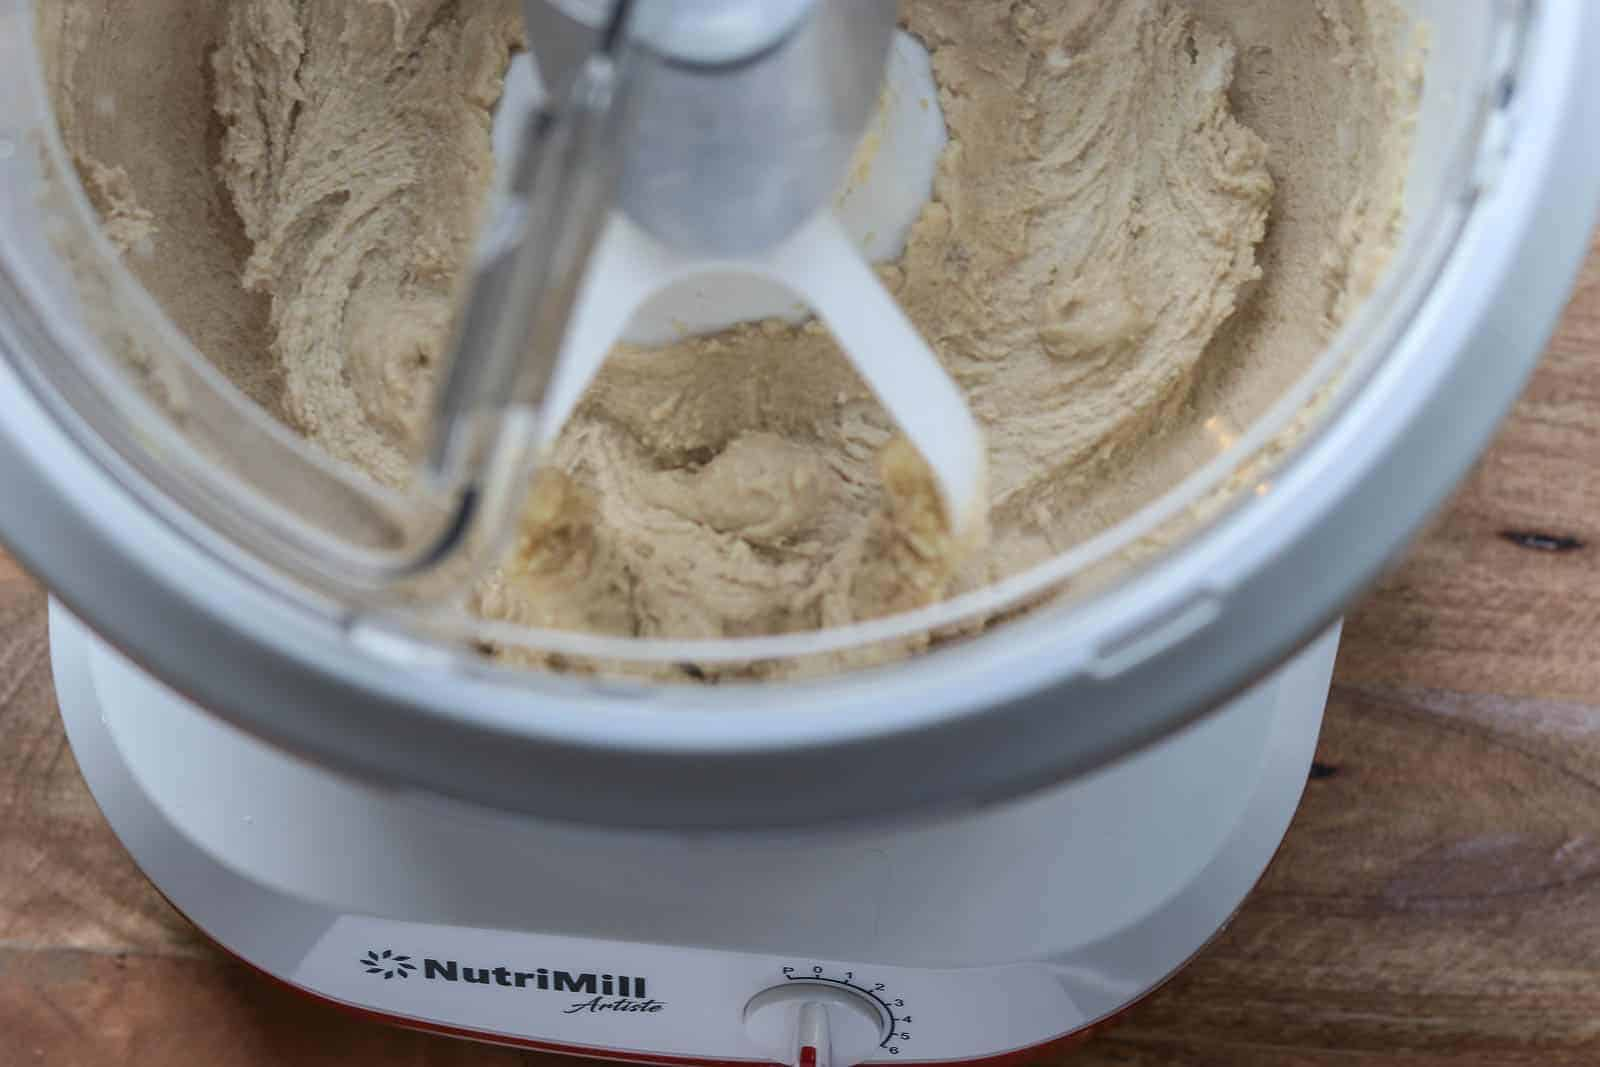 Nutrimill Artist Mixer with creamed butter, sugar and vanilla.